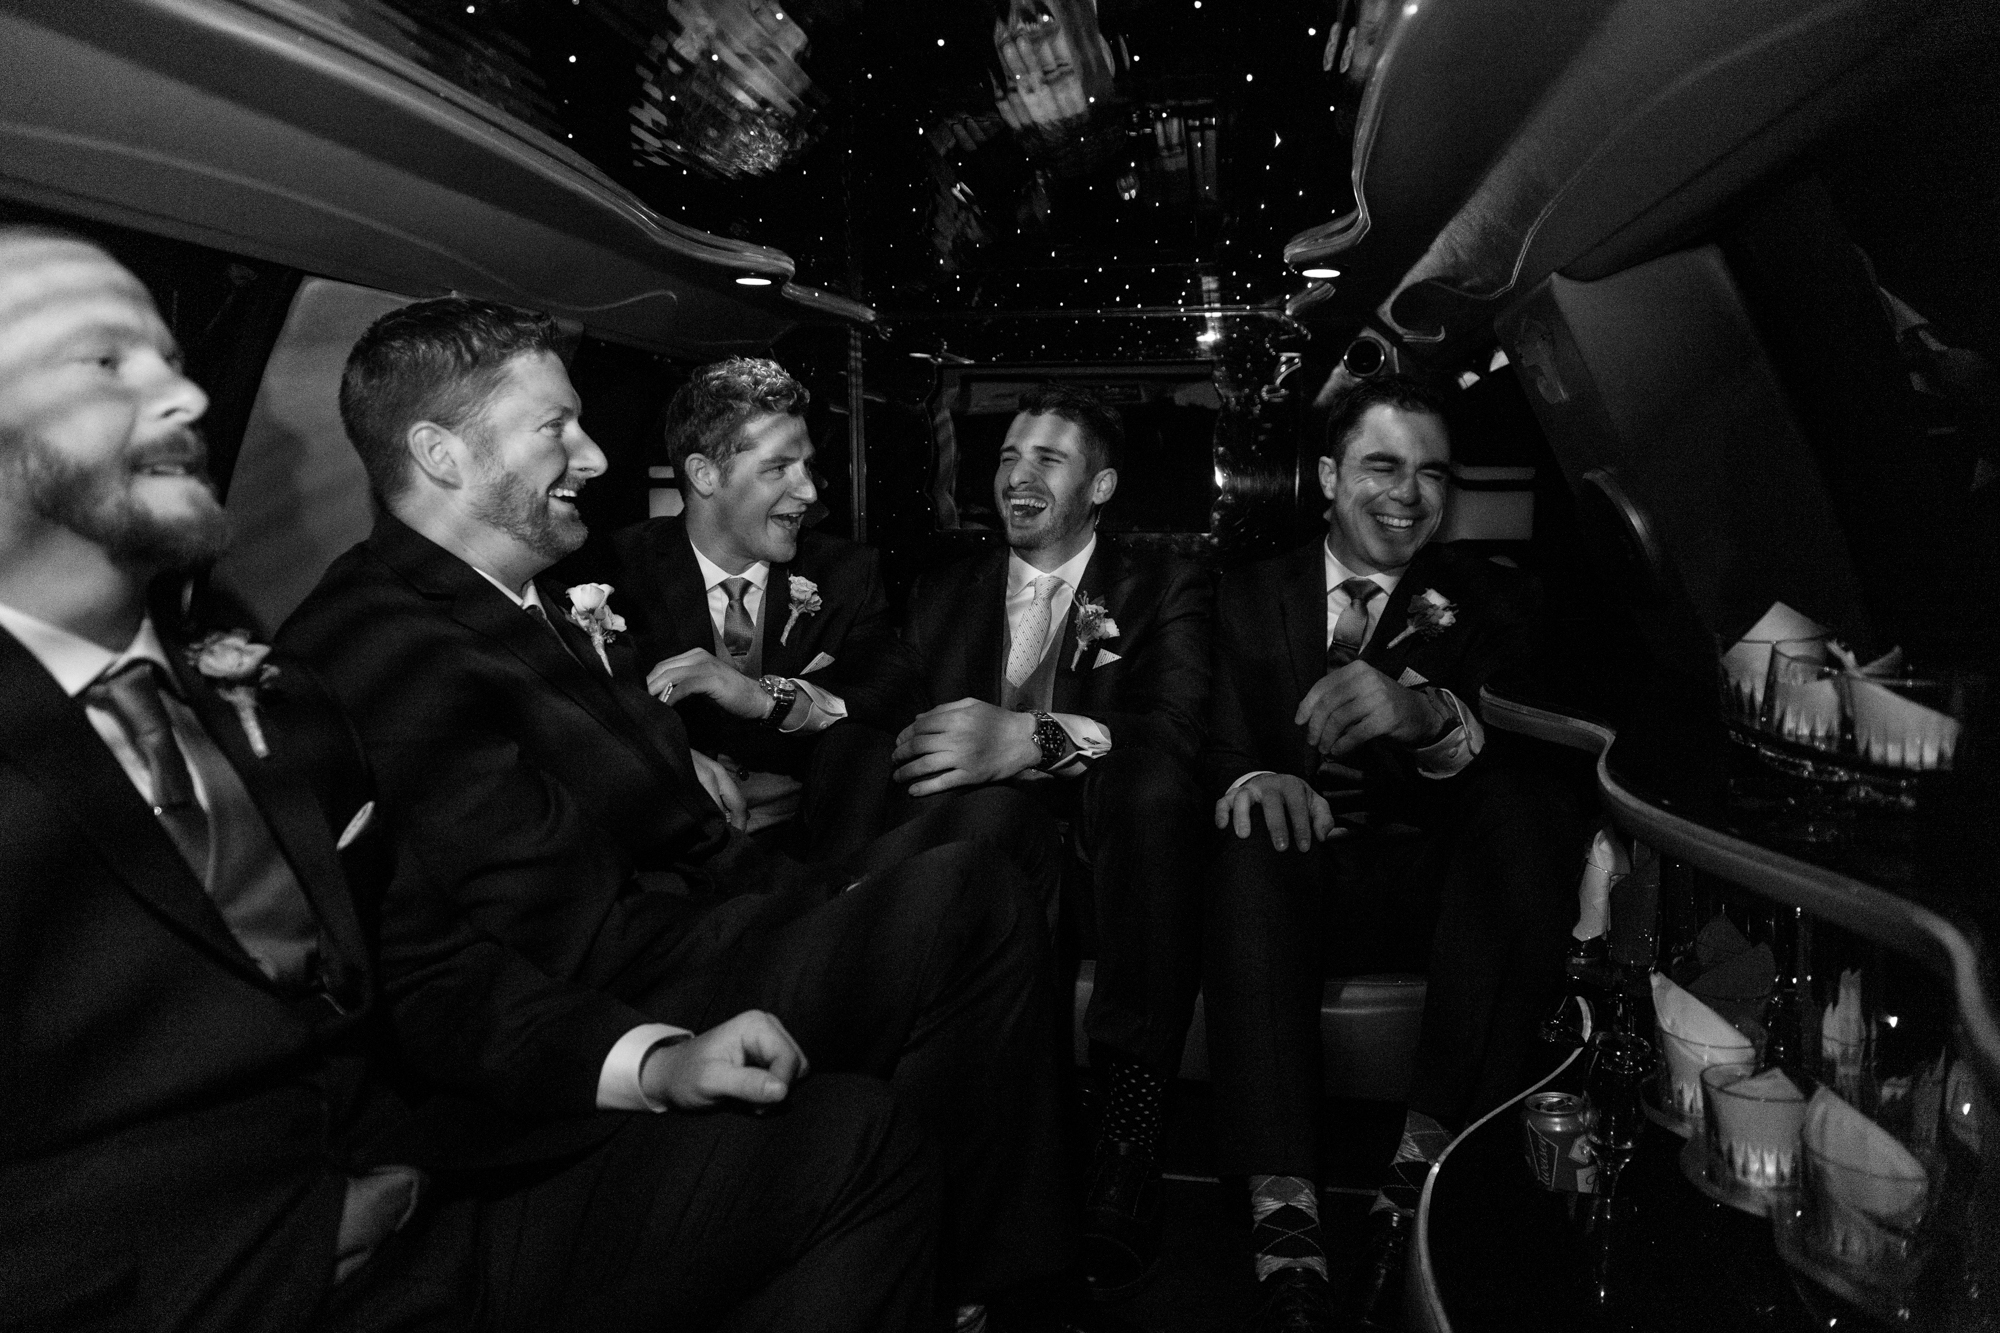 Groom riding in the limo